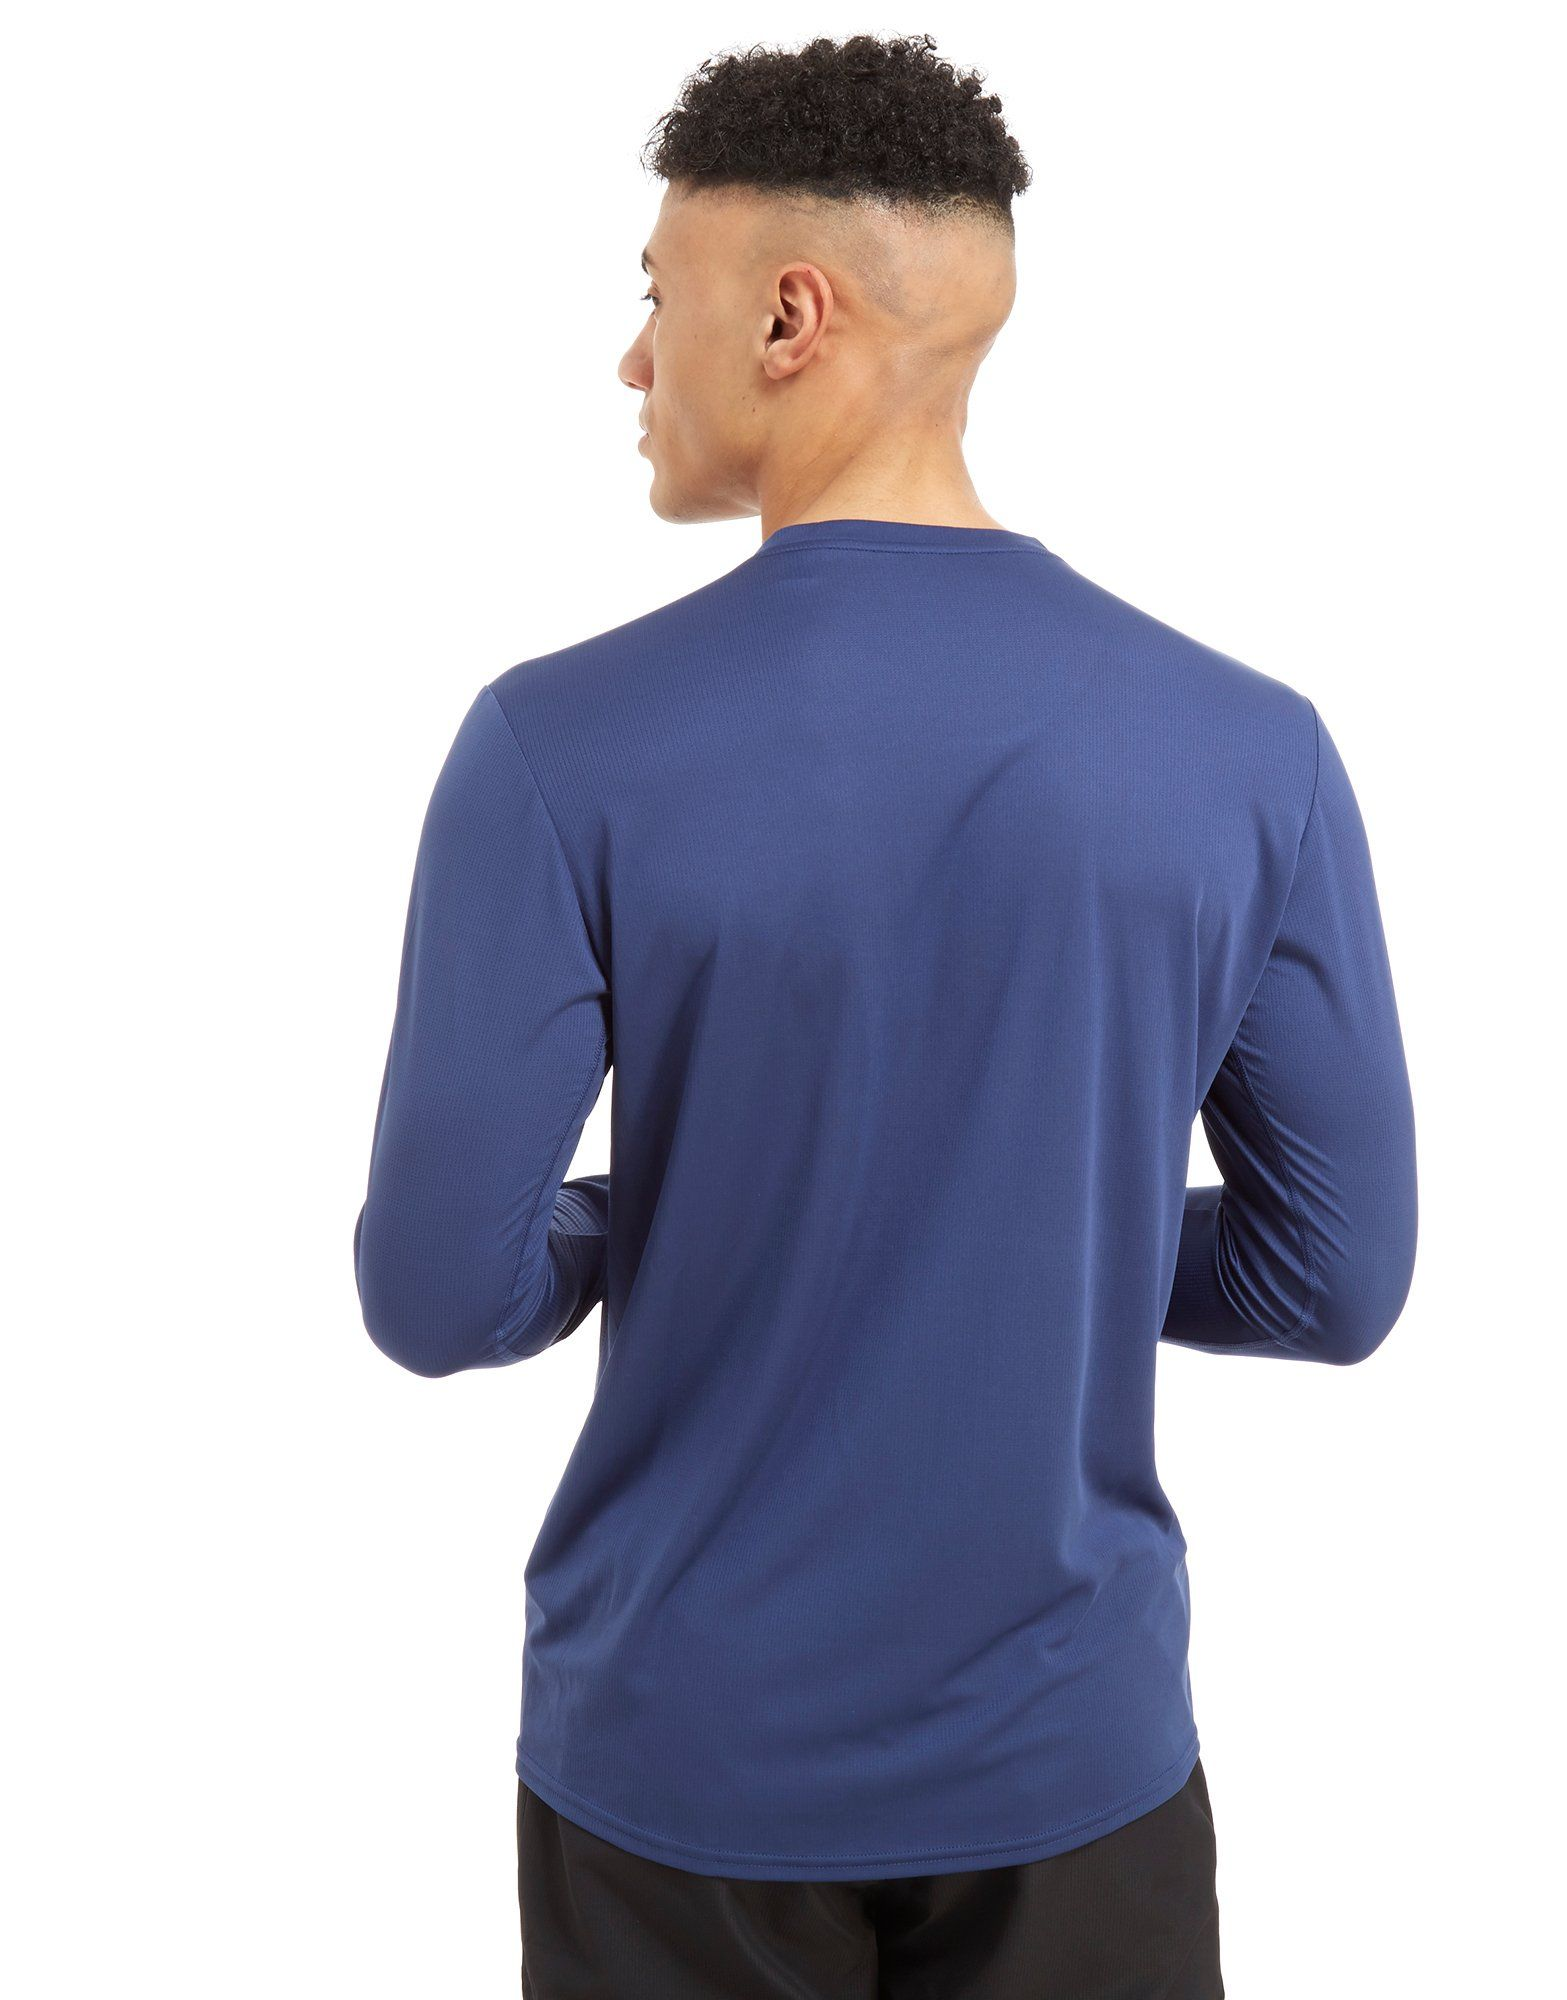 adidas Response Long Sleeve T-Shirt Blau